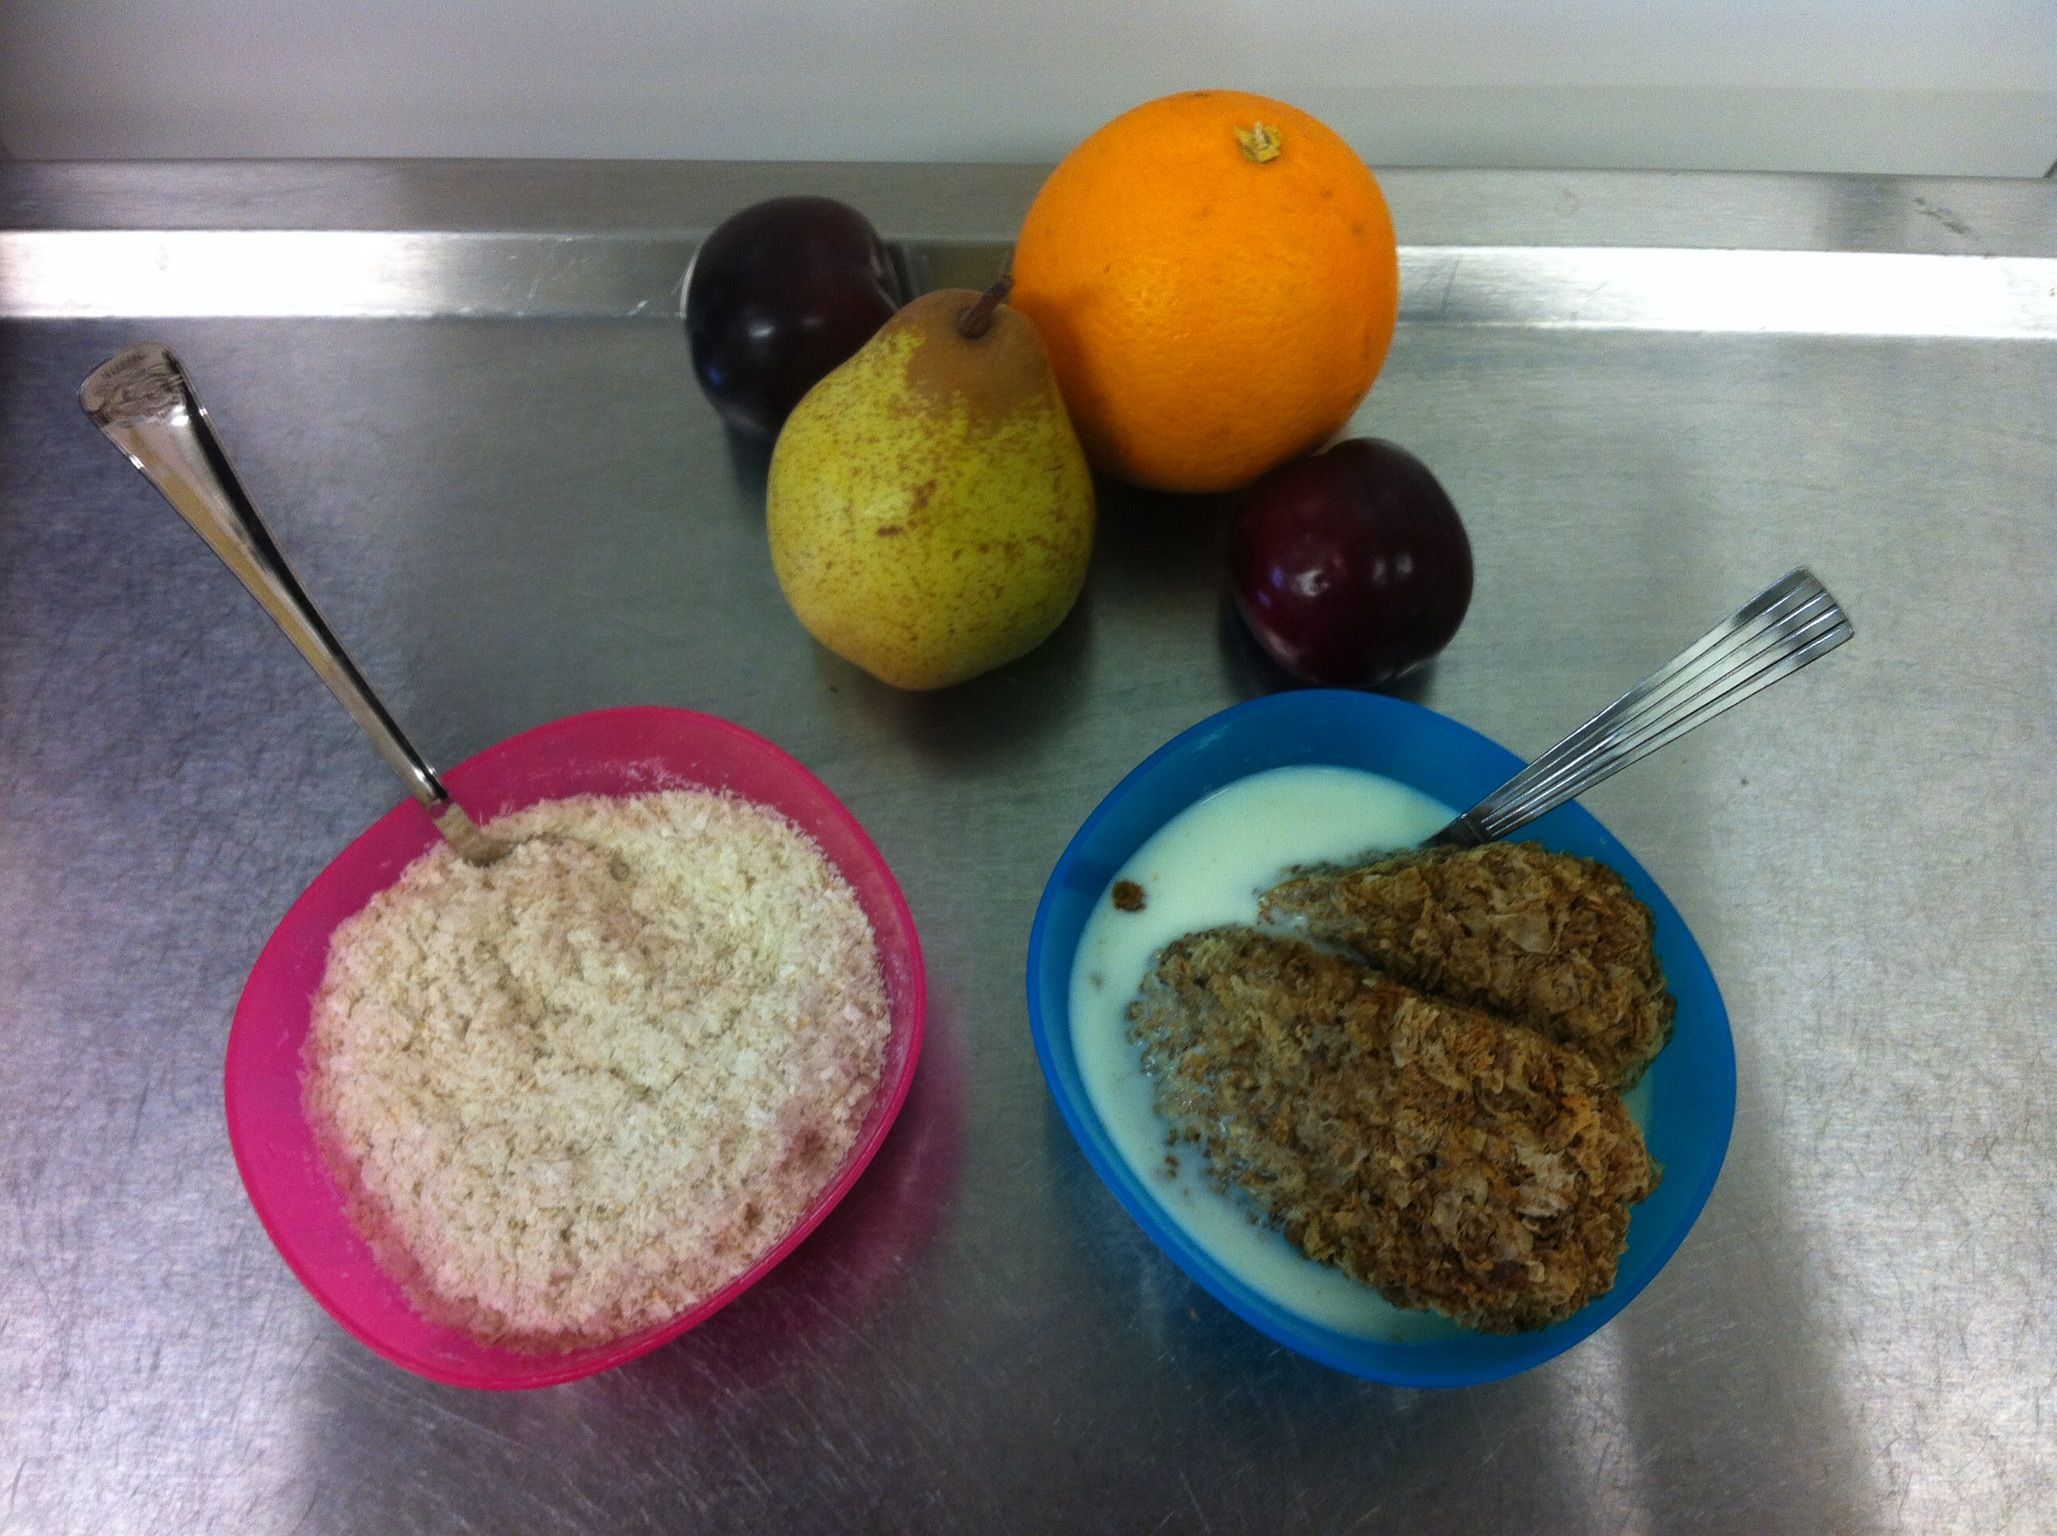 Why is it important your child has breakfast each morning?